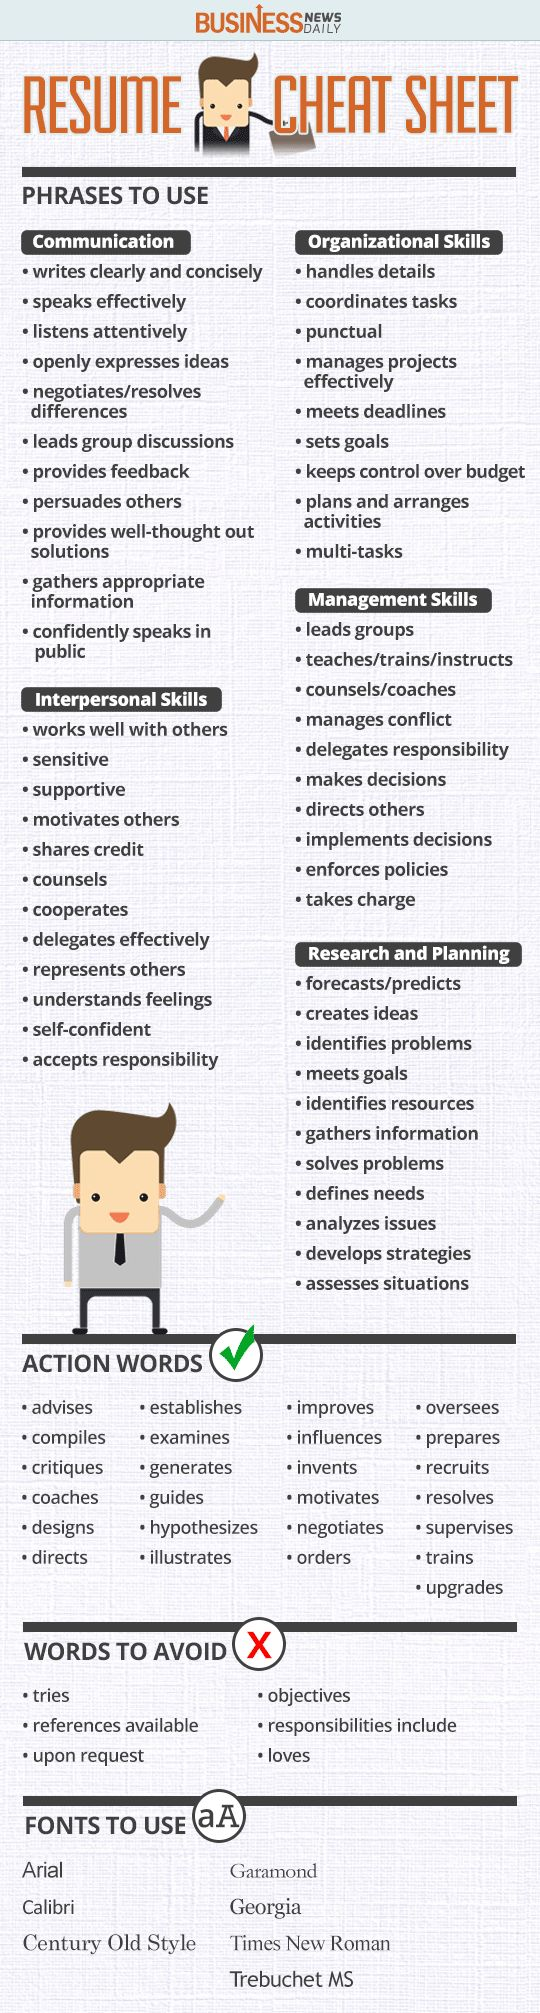 Picnictoimpeachus  Nice  Ideas About Resume On Pinterest  Cv Format Resume Cv And  With Interesting Resume Cheat Sheet Infographic Andrews Almost Done With A Complete Unit On Employment Which With Amazing Project Coordinator Resume Sample Also Customer Services Resume In Addition Entry Level Bank Teller Resume And Usajobs Resume Sample As Well As Psychologist Resume Additionally Sample Resume Summary Statements From Pinterestcom With Picnictoimpeachus  Interesting  Ideas About Resume On Pinterest  Cv Format Resume Cv And  With Amazing Resume Cheat Sheet Infographic Andrews Almost Done With A Complete Unit On Employment Which And Nice Project Coordinator Resume Sample Also Customer Services Resume In Addition Entry Level Bank Teller Resume From Pinterestcom